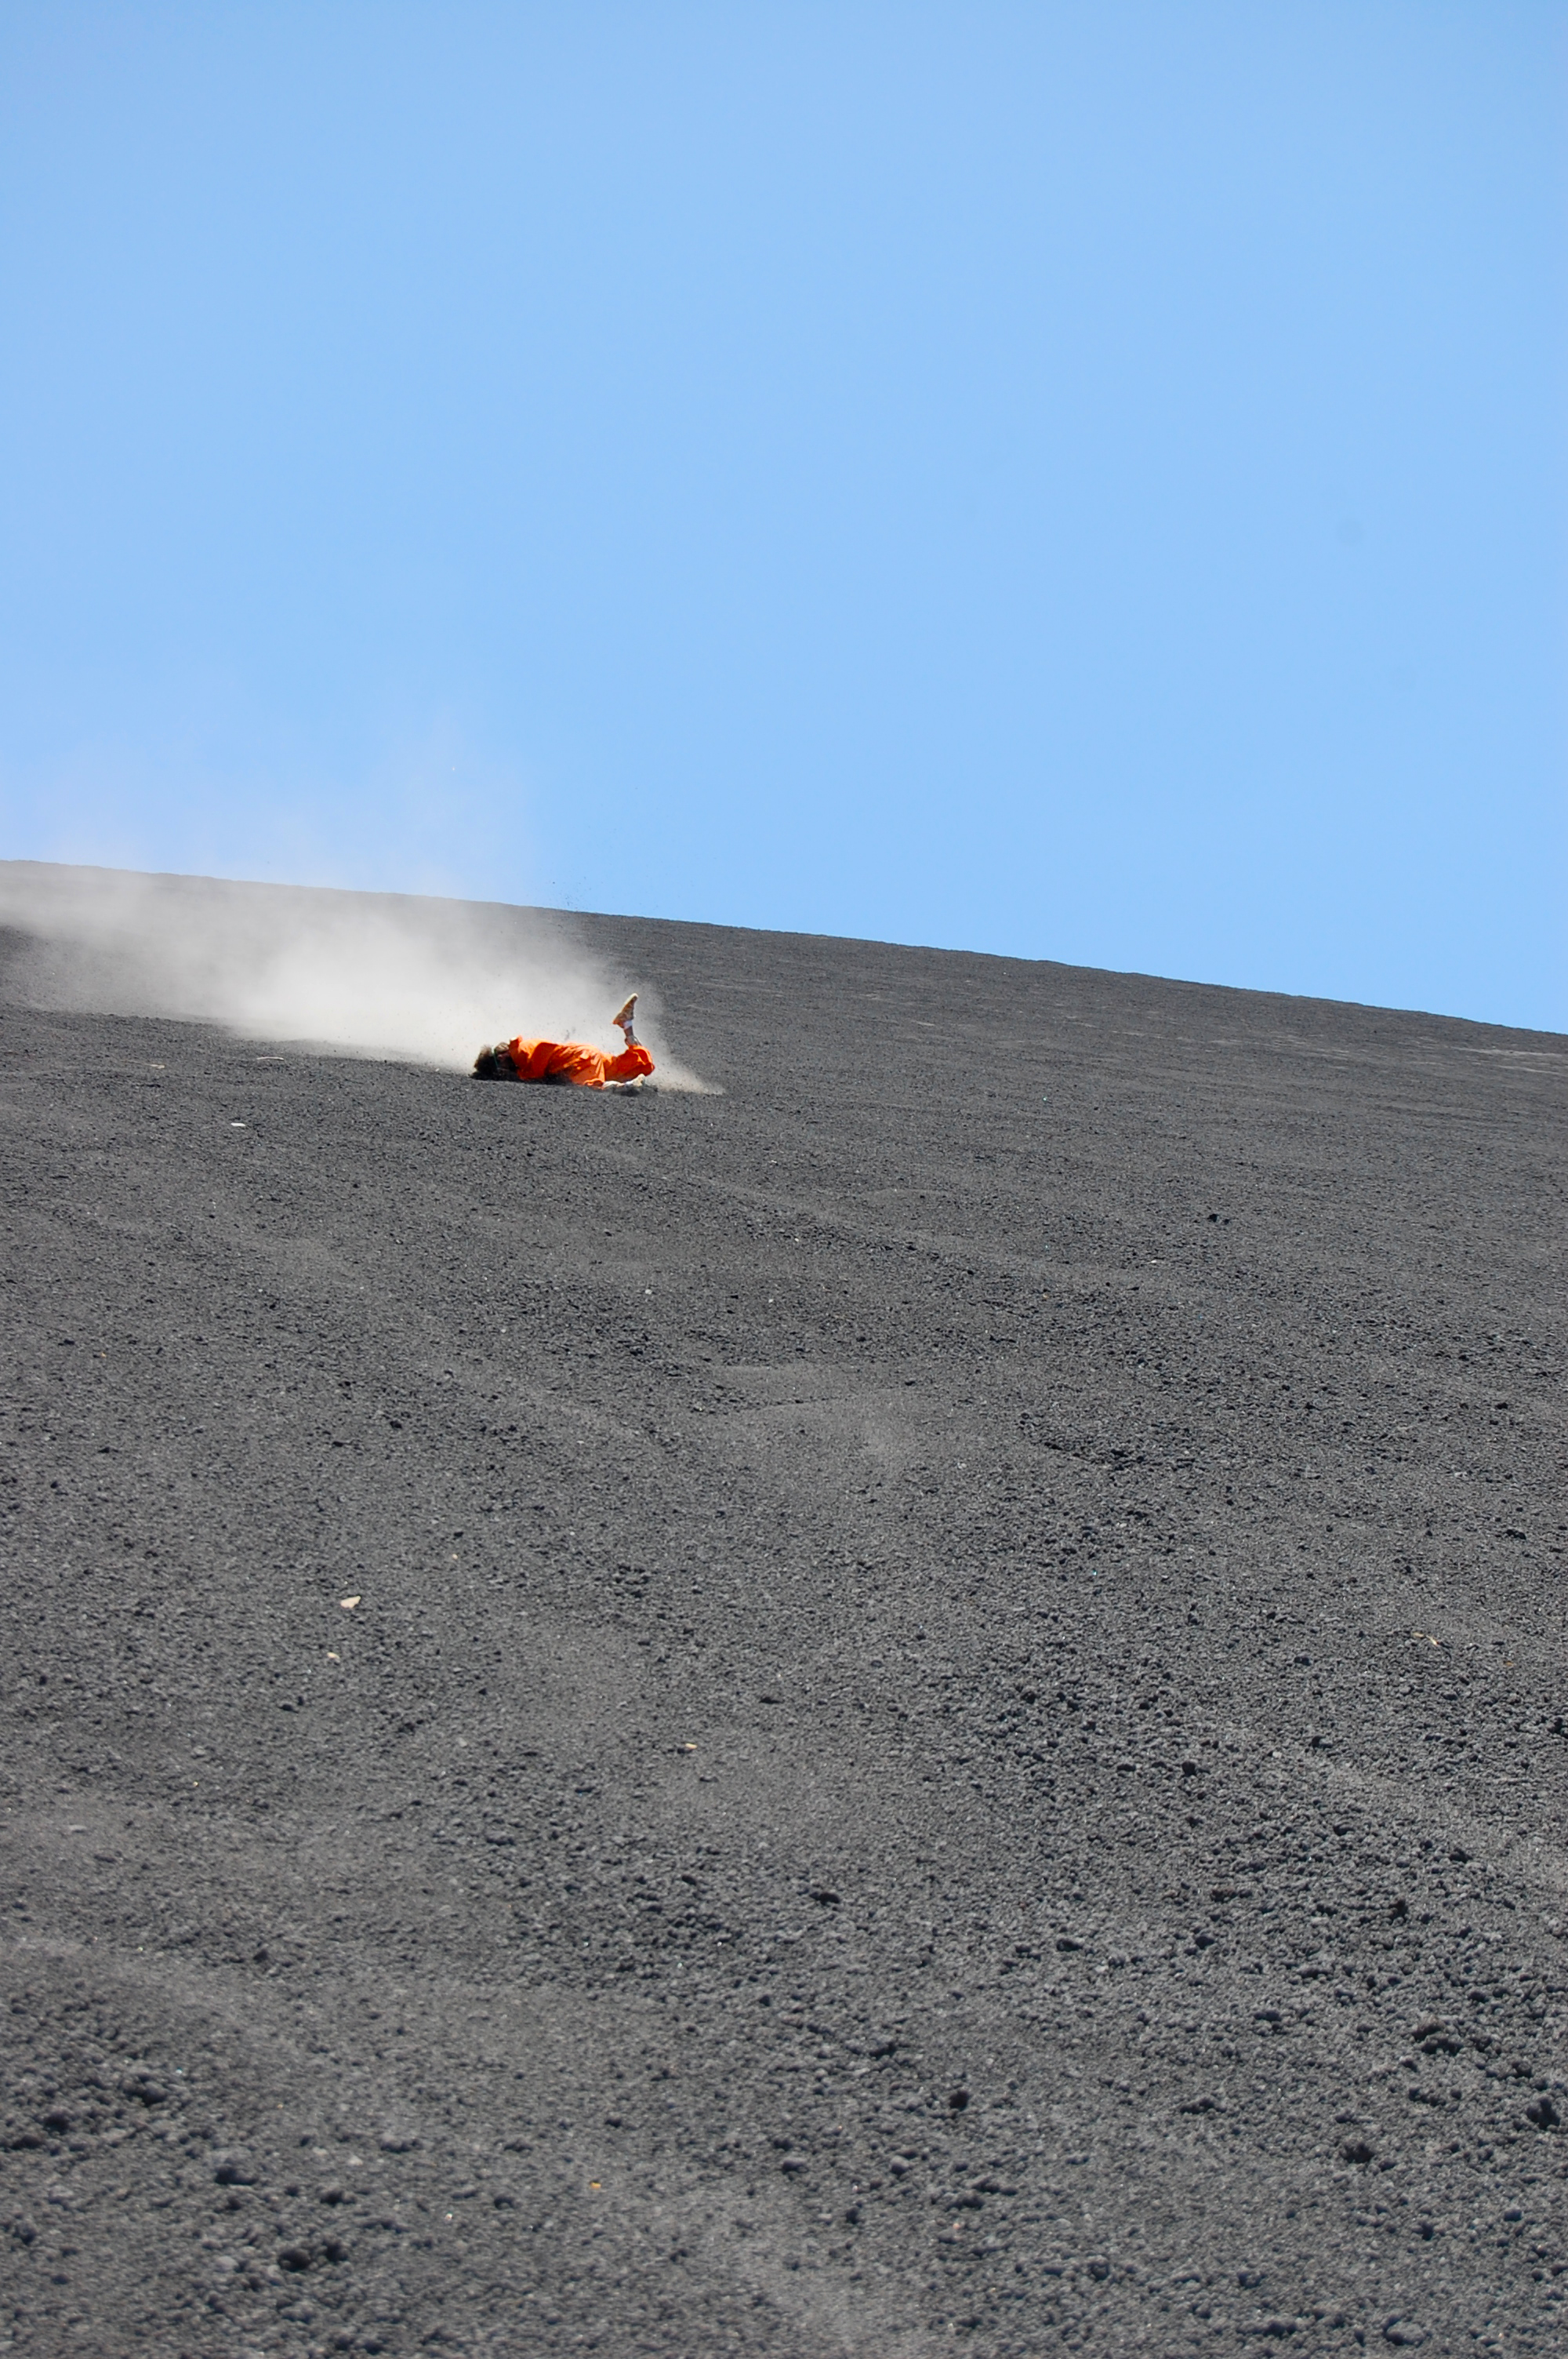 Bouncing off my face while volcano boarding